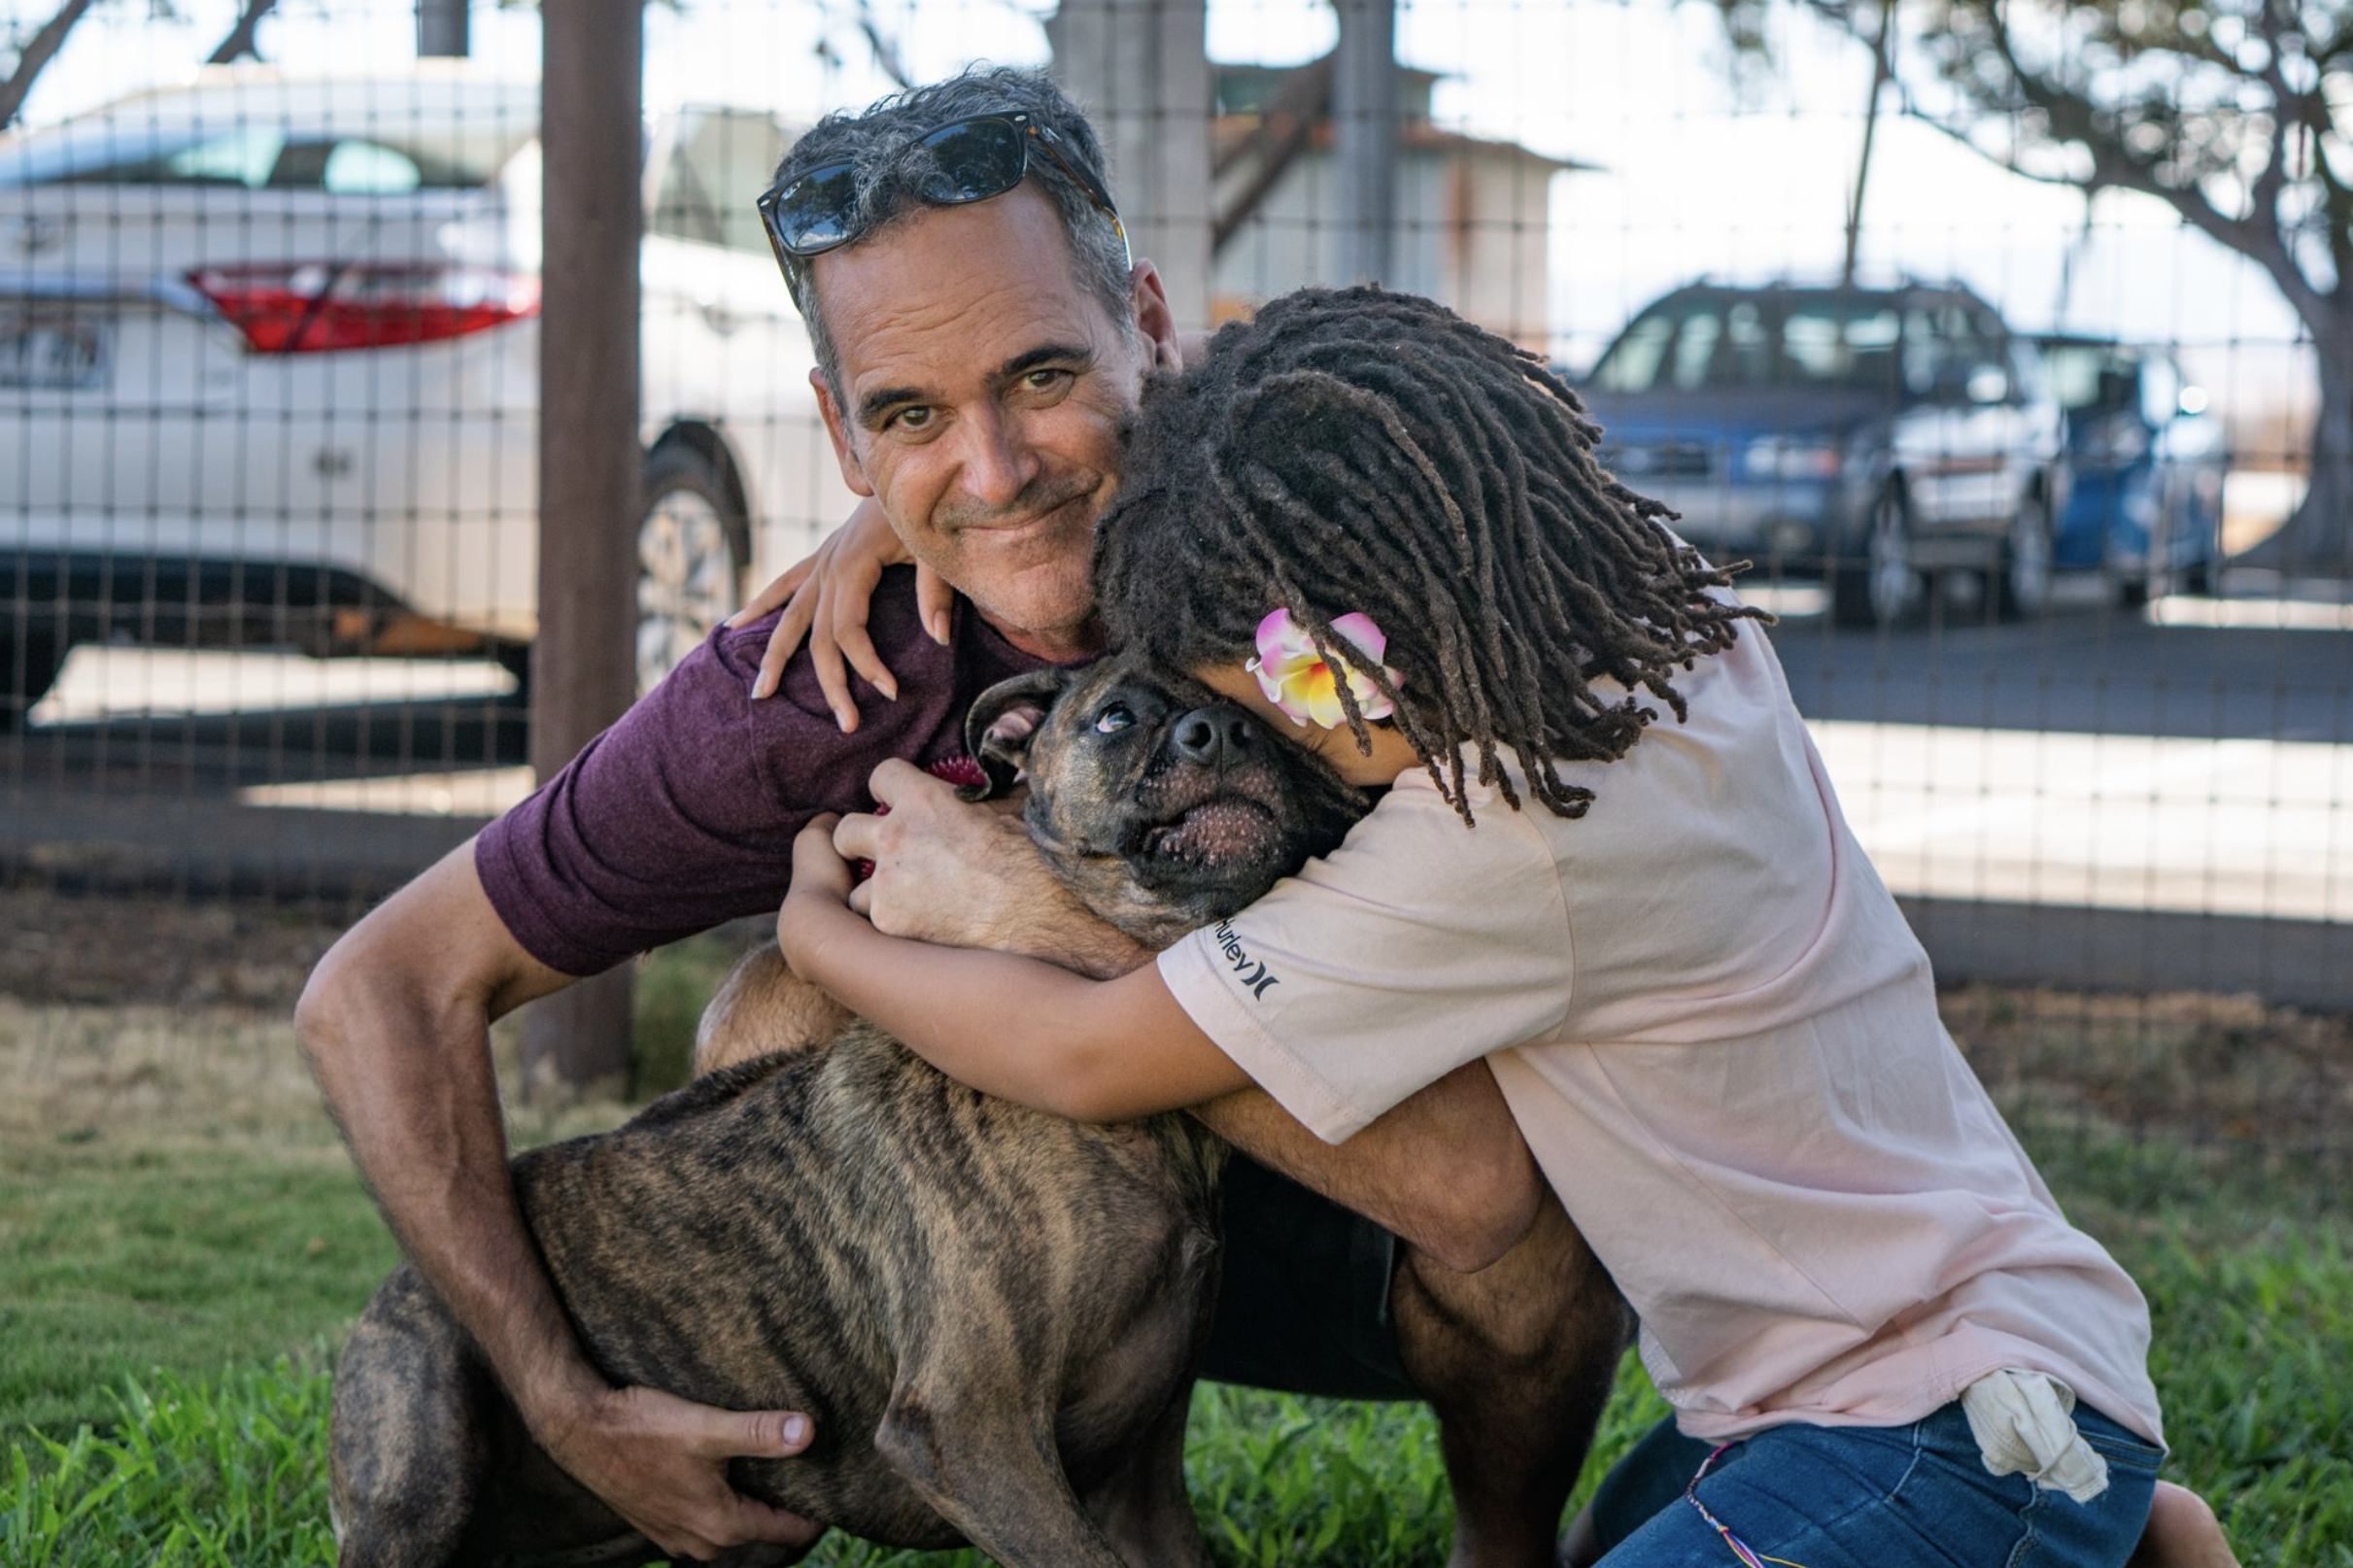 Update on Maui Pet Adoption Story that Helped Earn $50K for Maui Humane Society